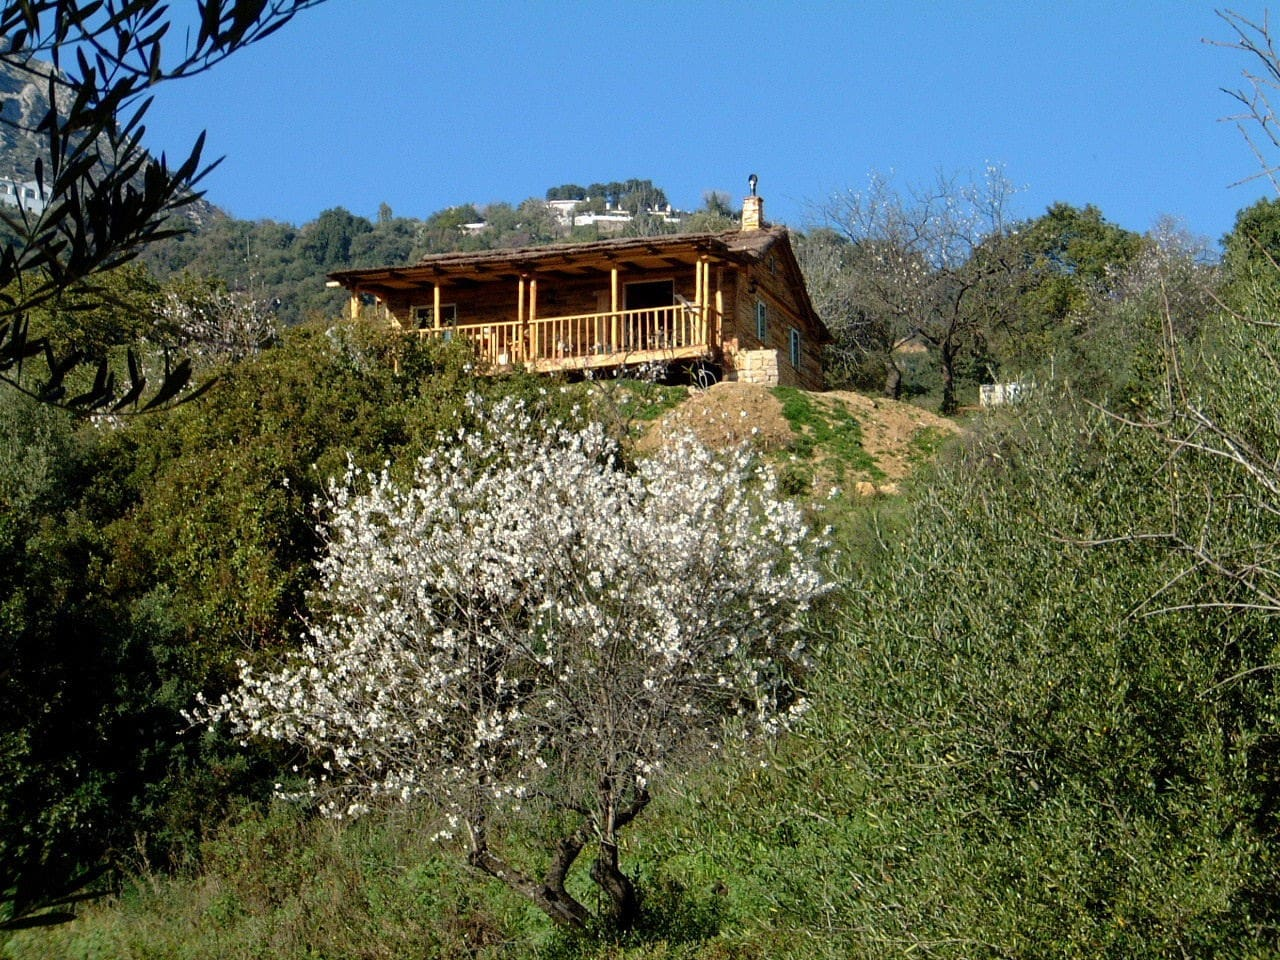 View of La Chozita with flowering almond tree in winter